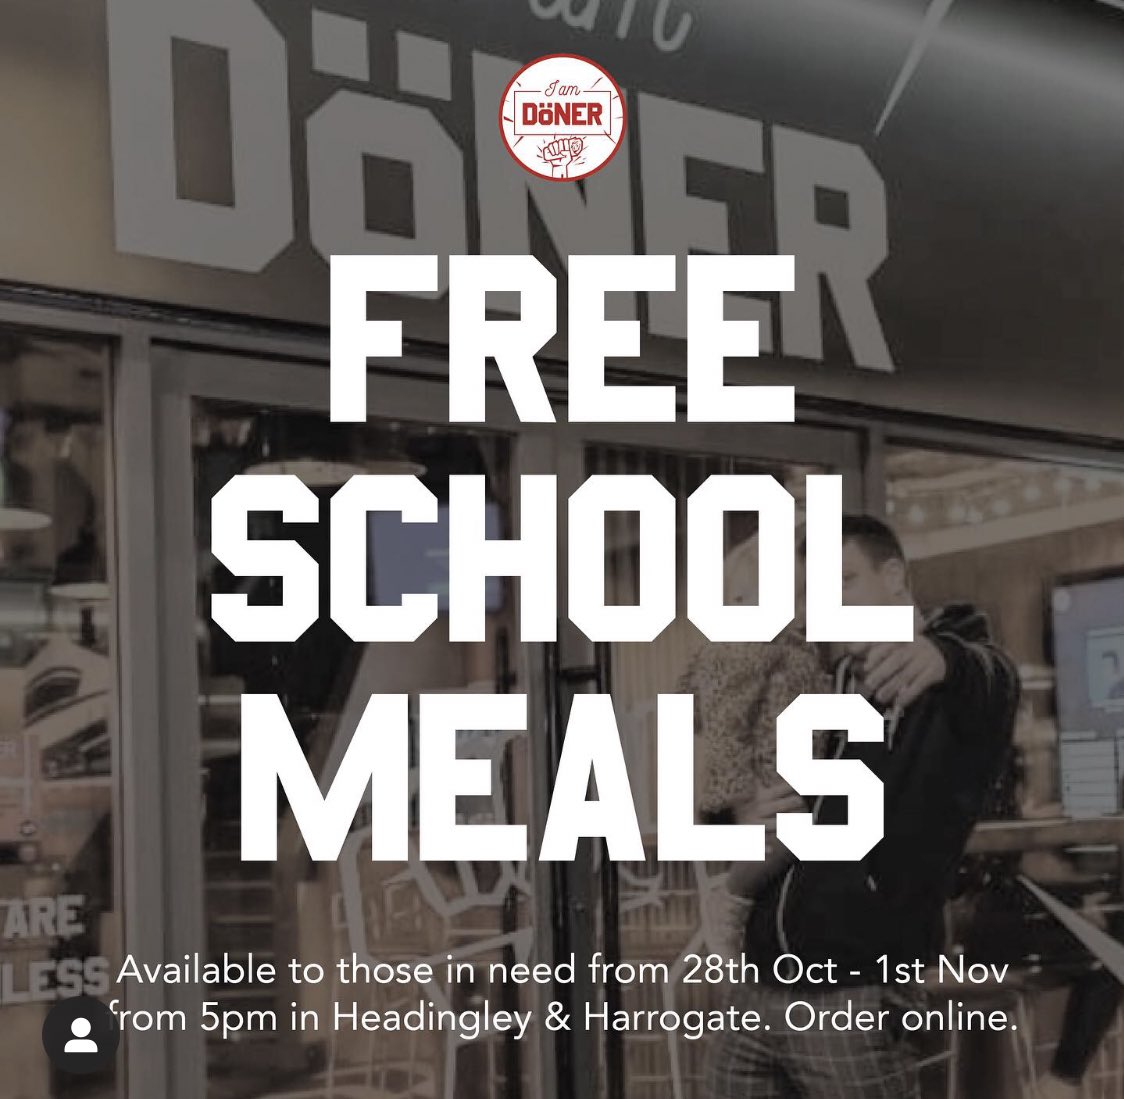 Both our Harrogate and Headingley sites will be offering 50 healthy free school meal alternatives per day from next Wednesday (28th) till Sunday (1st). See below for more details & please share to help those who need it.